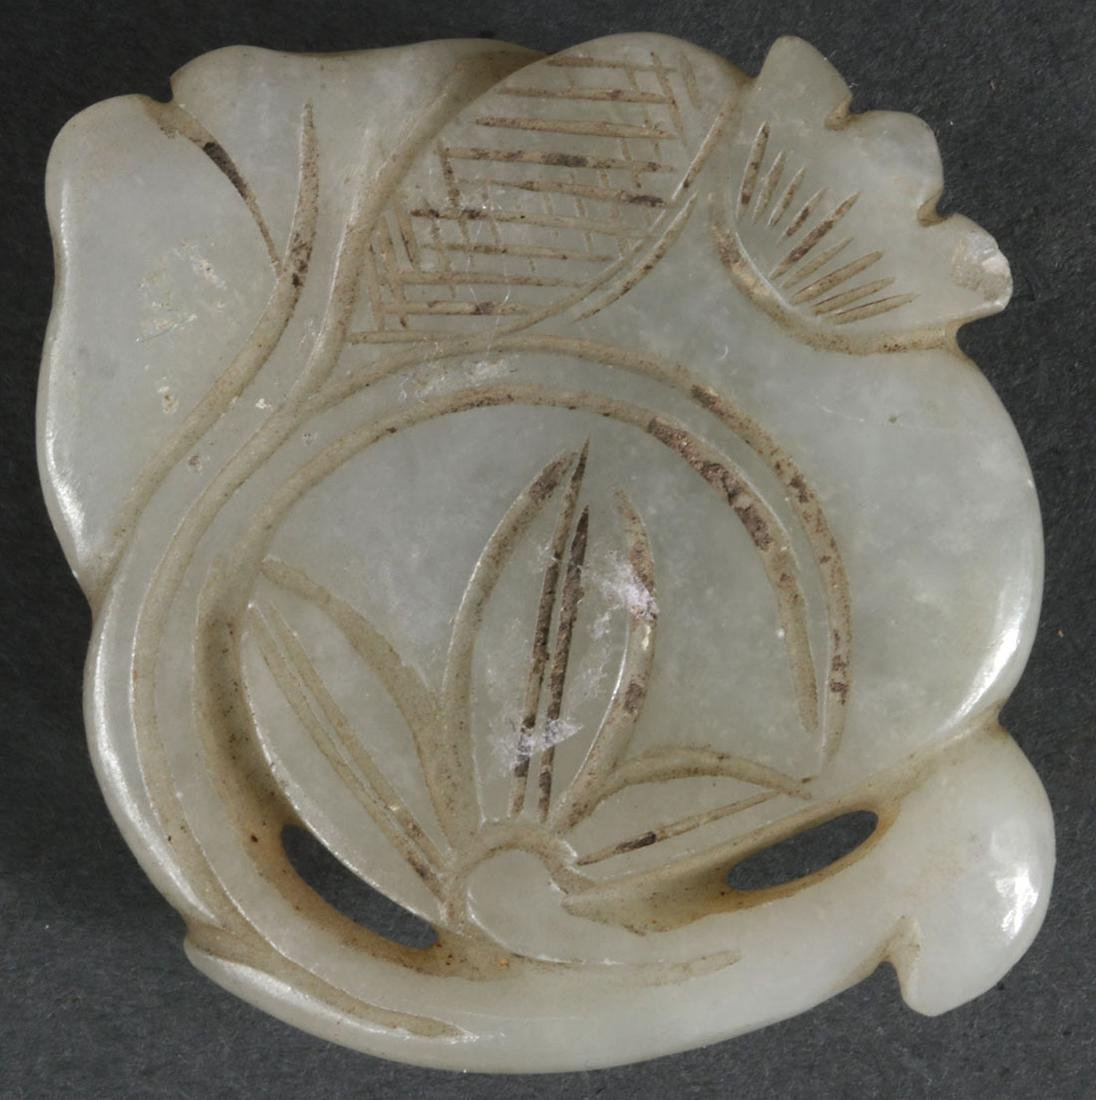 10 CHINESE CARVED JADE PENDANTS, QING DYNASTY - 4